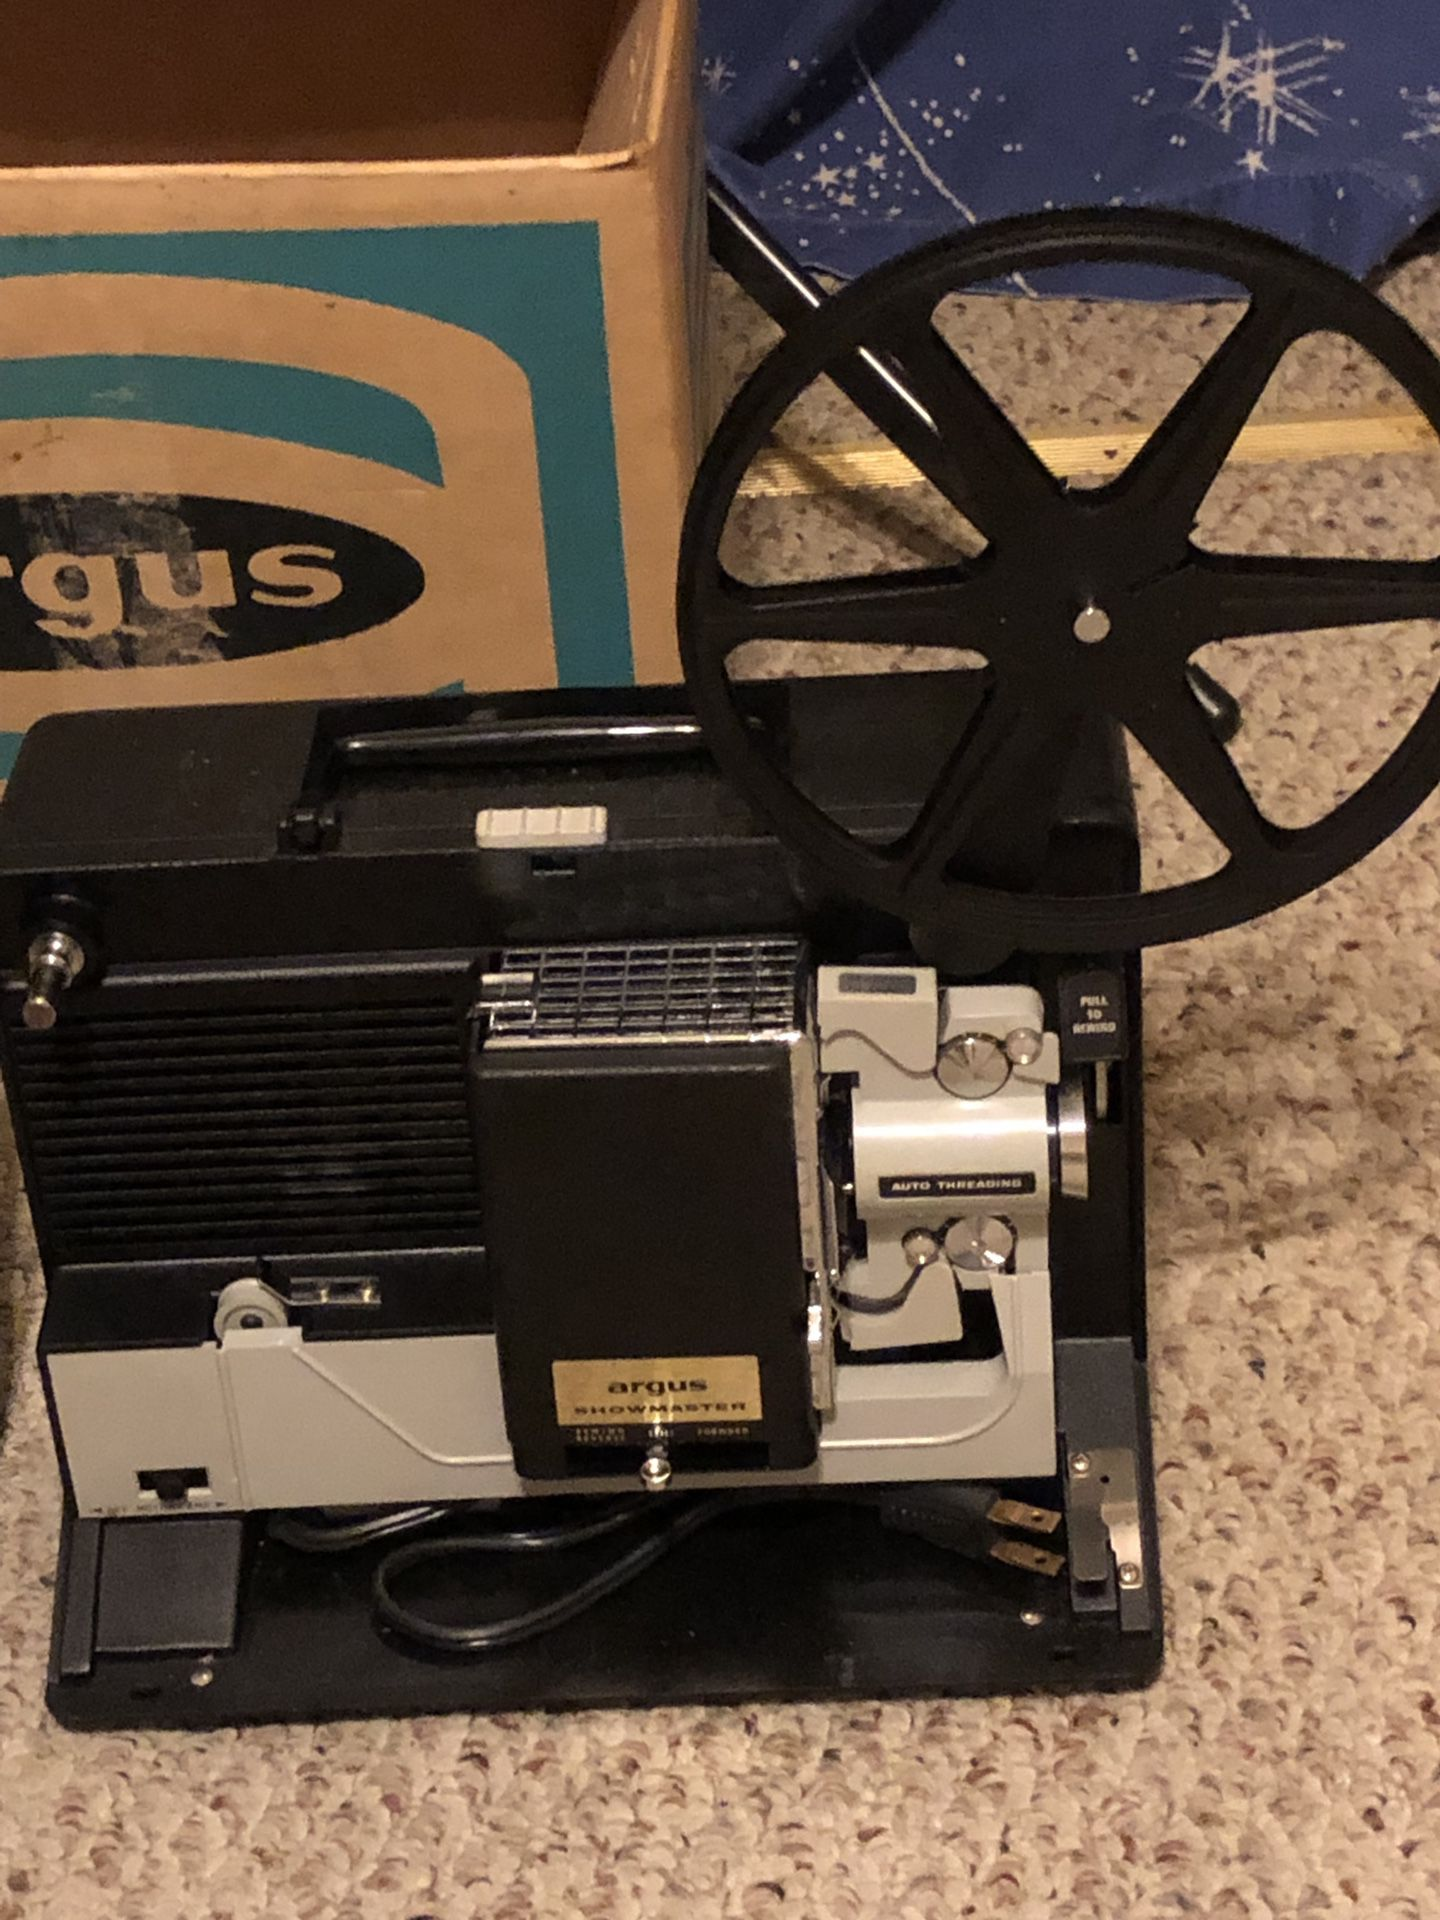 8 mm Argus Showmaster movie projector and screen.